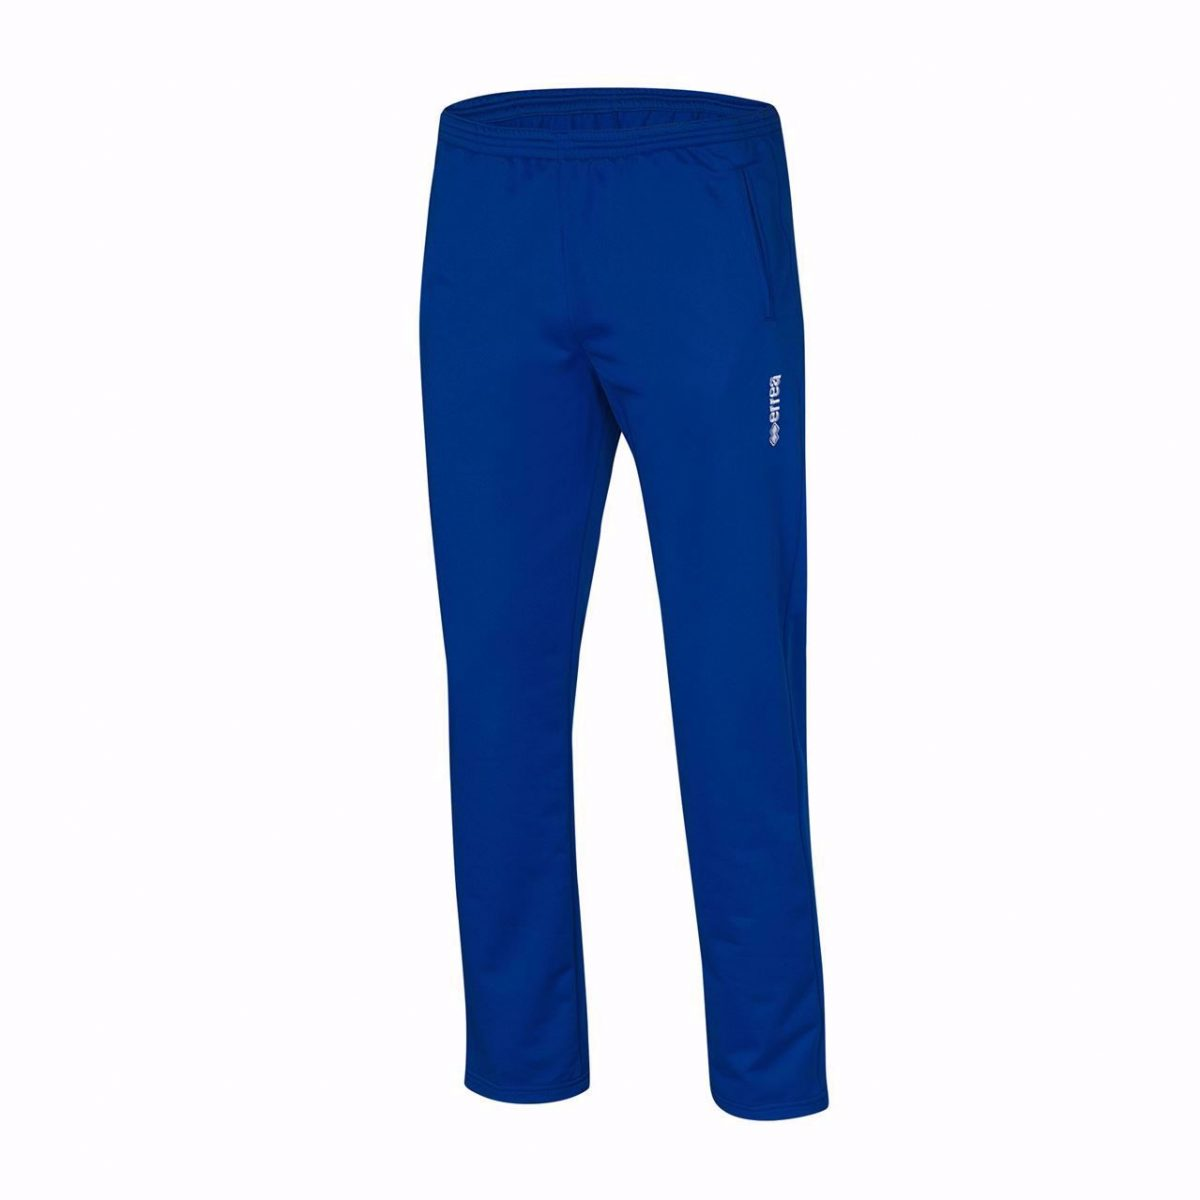 Errea CLAYTON 3.0 Trackpant Trousers FP820Z